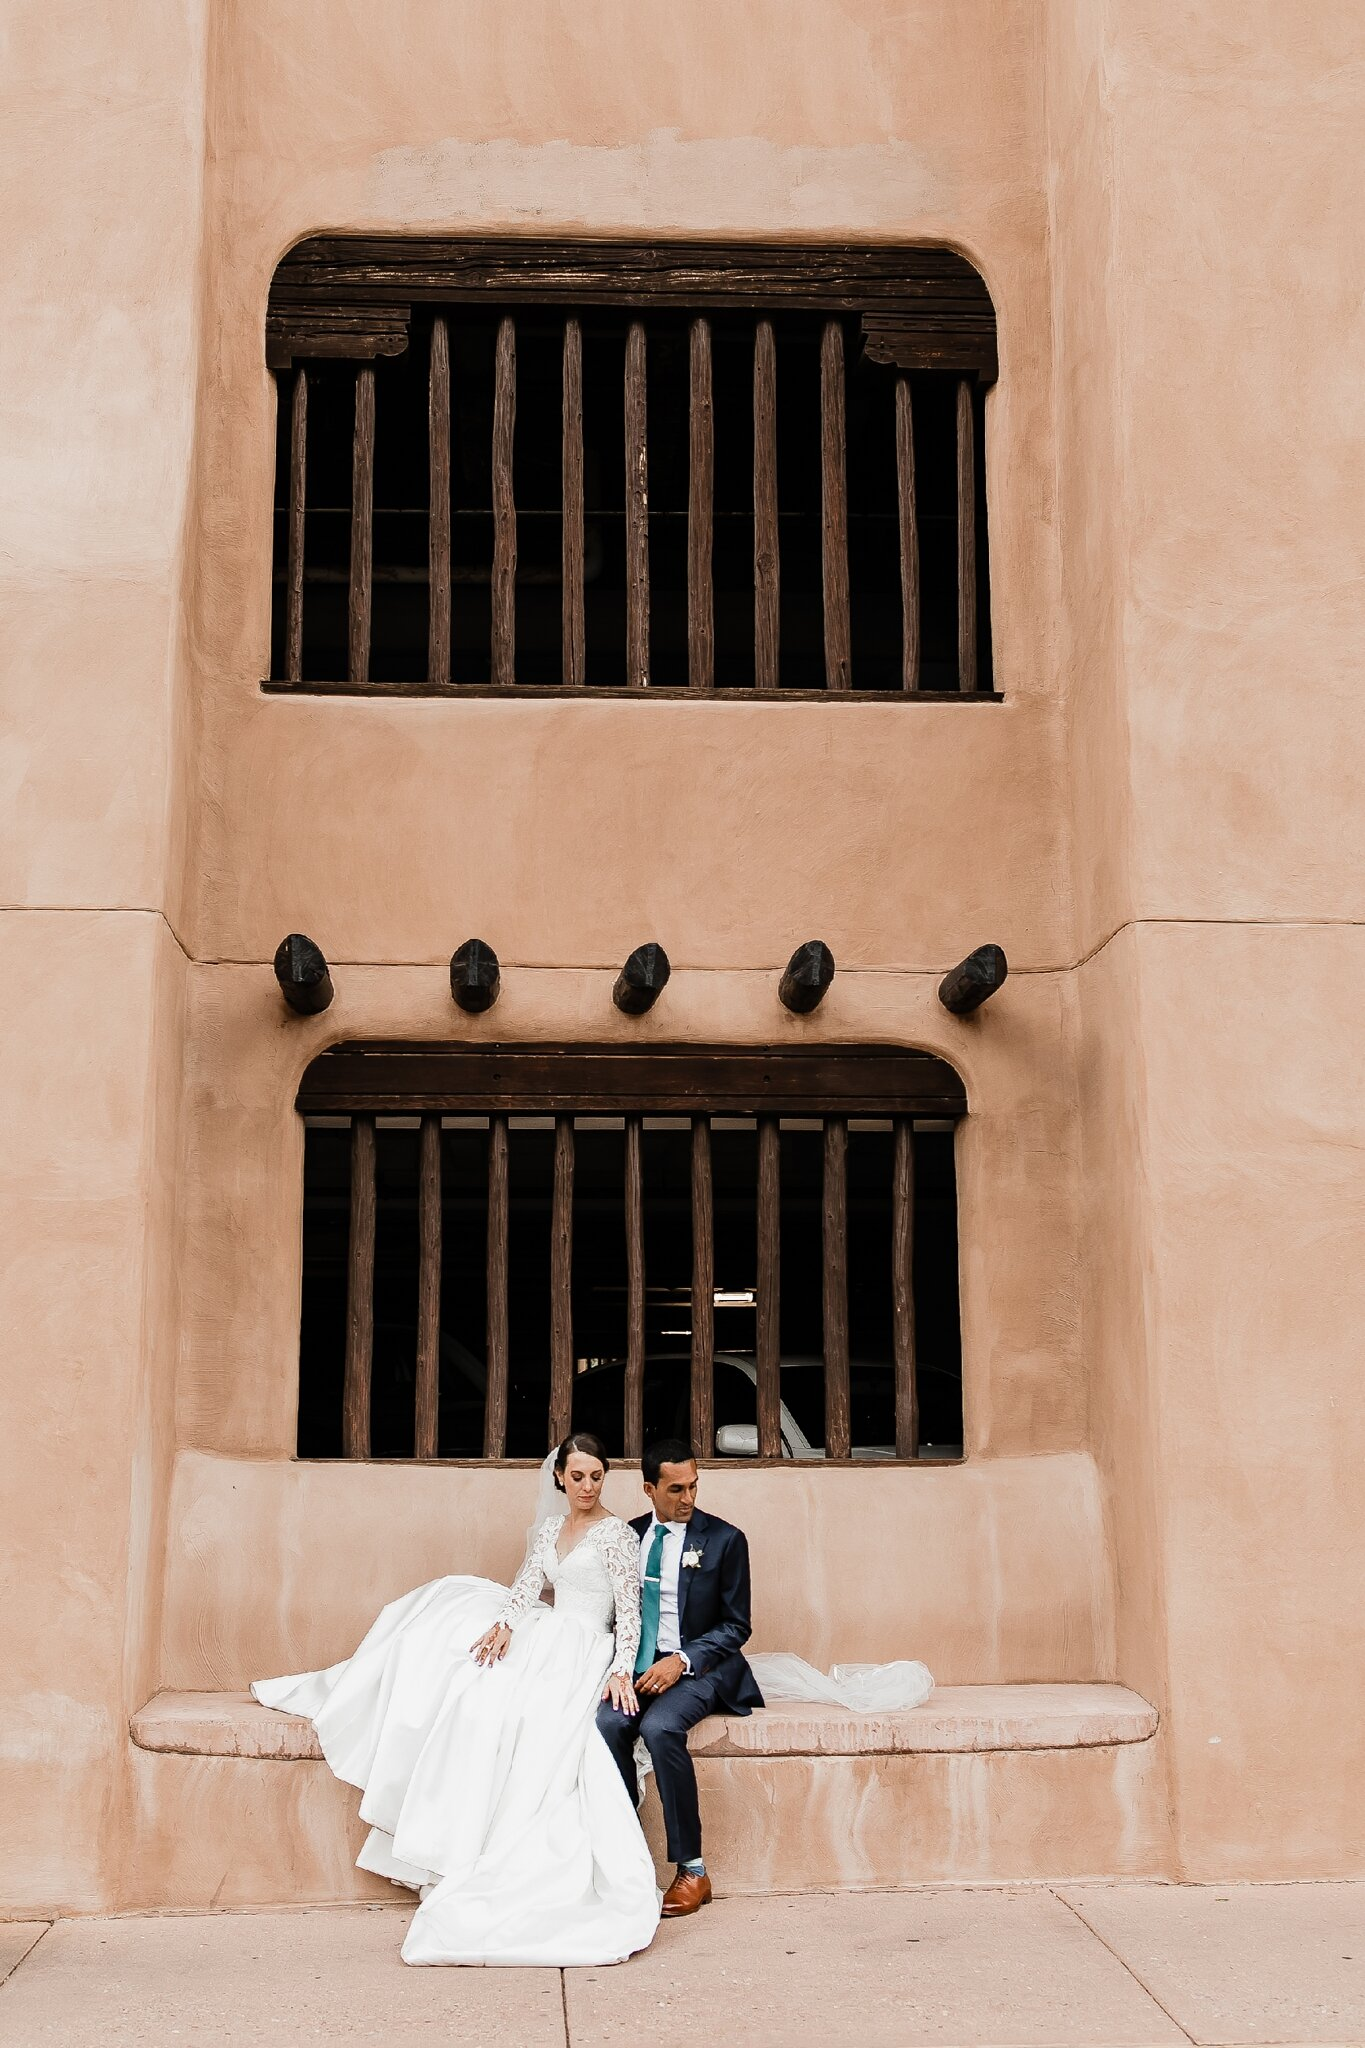 Alicia+lucia+photography+-+albuquerque+wedding+photographer+-+santa+fe+wedding+photography+-+new+mexico+wedding+photographer+-+new+mexico+wedding+-+hindu+wedding+-+catholic+wedding+-+multicultural+wedding+-+santa+fe+wedding_0094.jpg